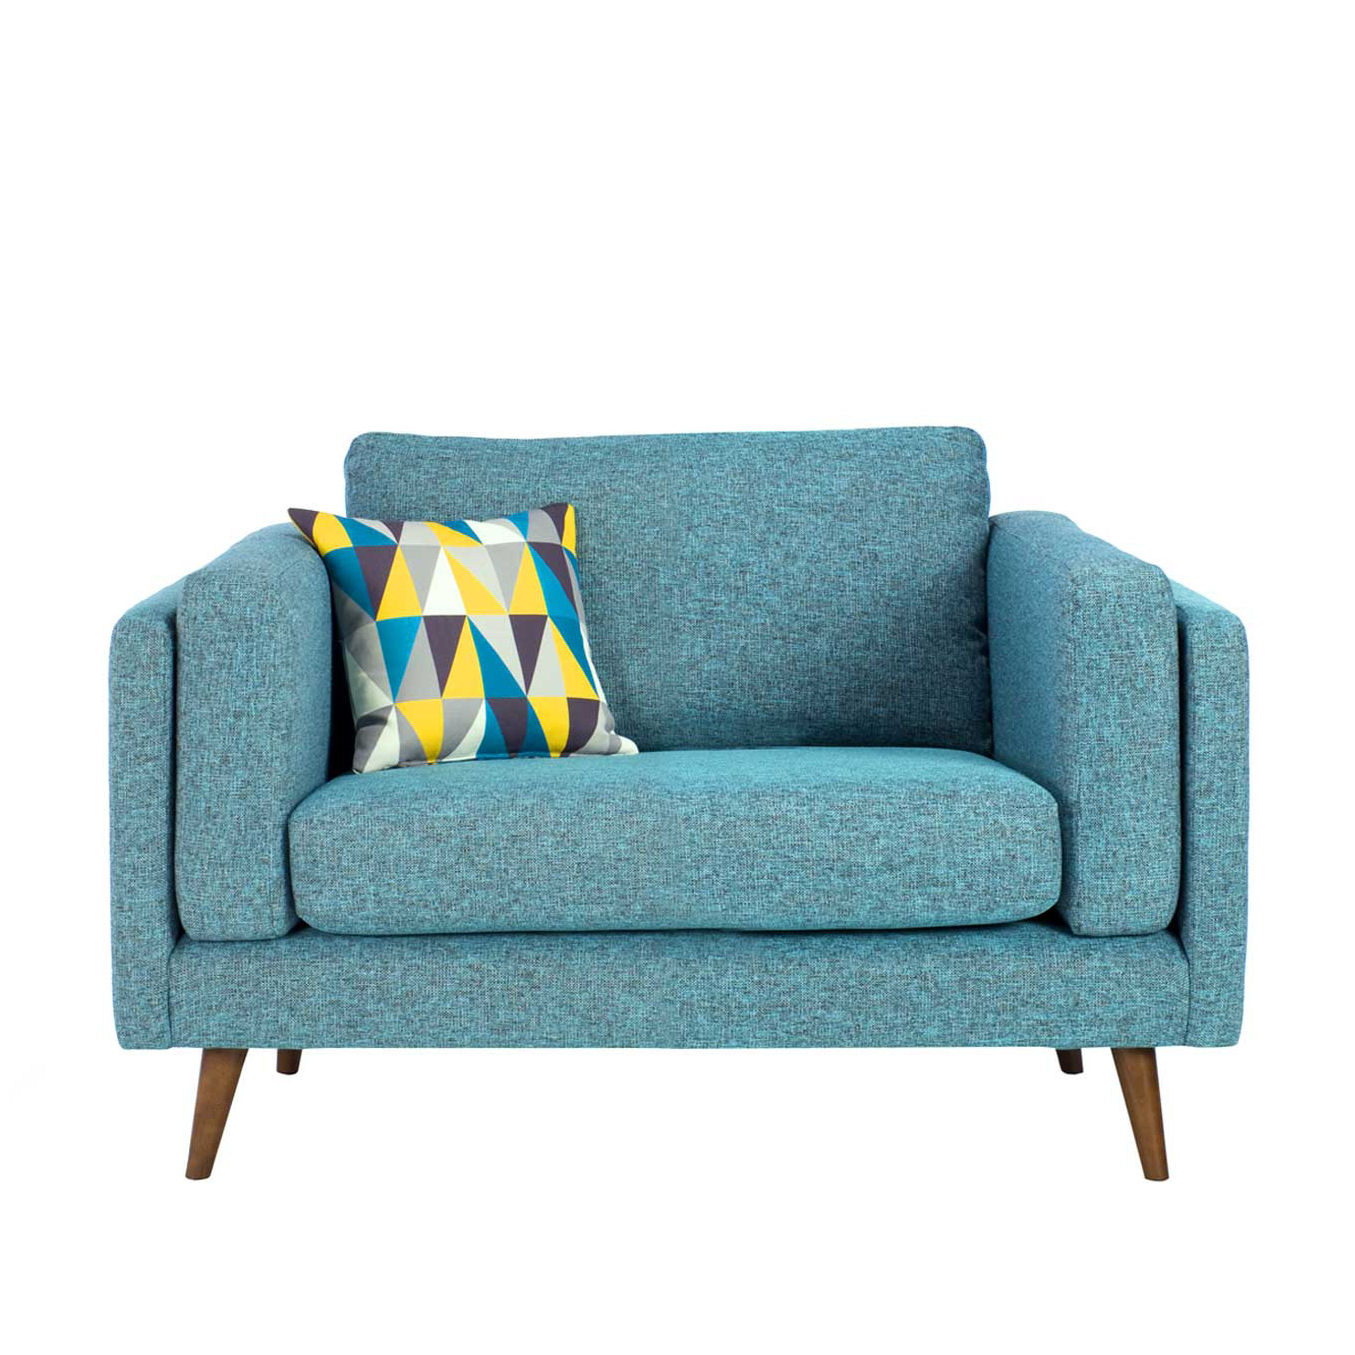 Juni blue snuggler armchair with geometric scatter cushion from Barker & Stonehouse